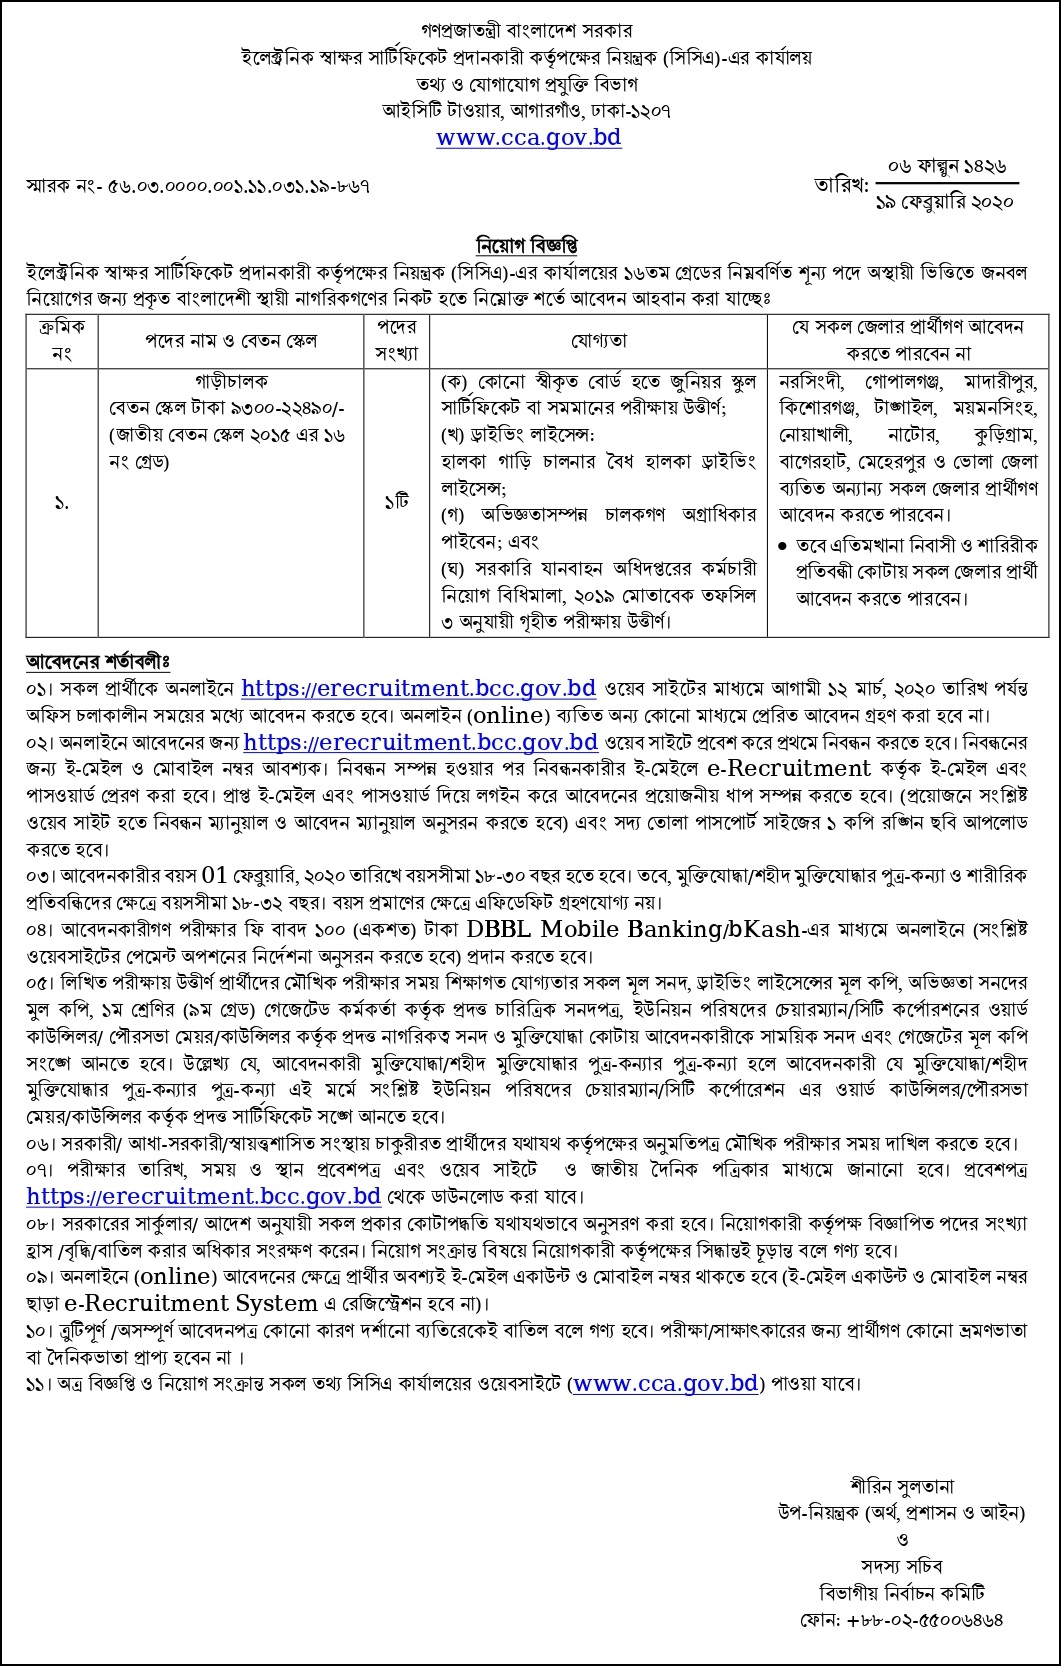 Information and Communication Technology Division Driver Job Circular 2020